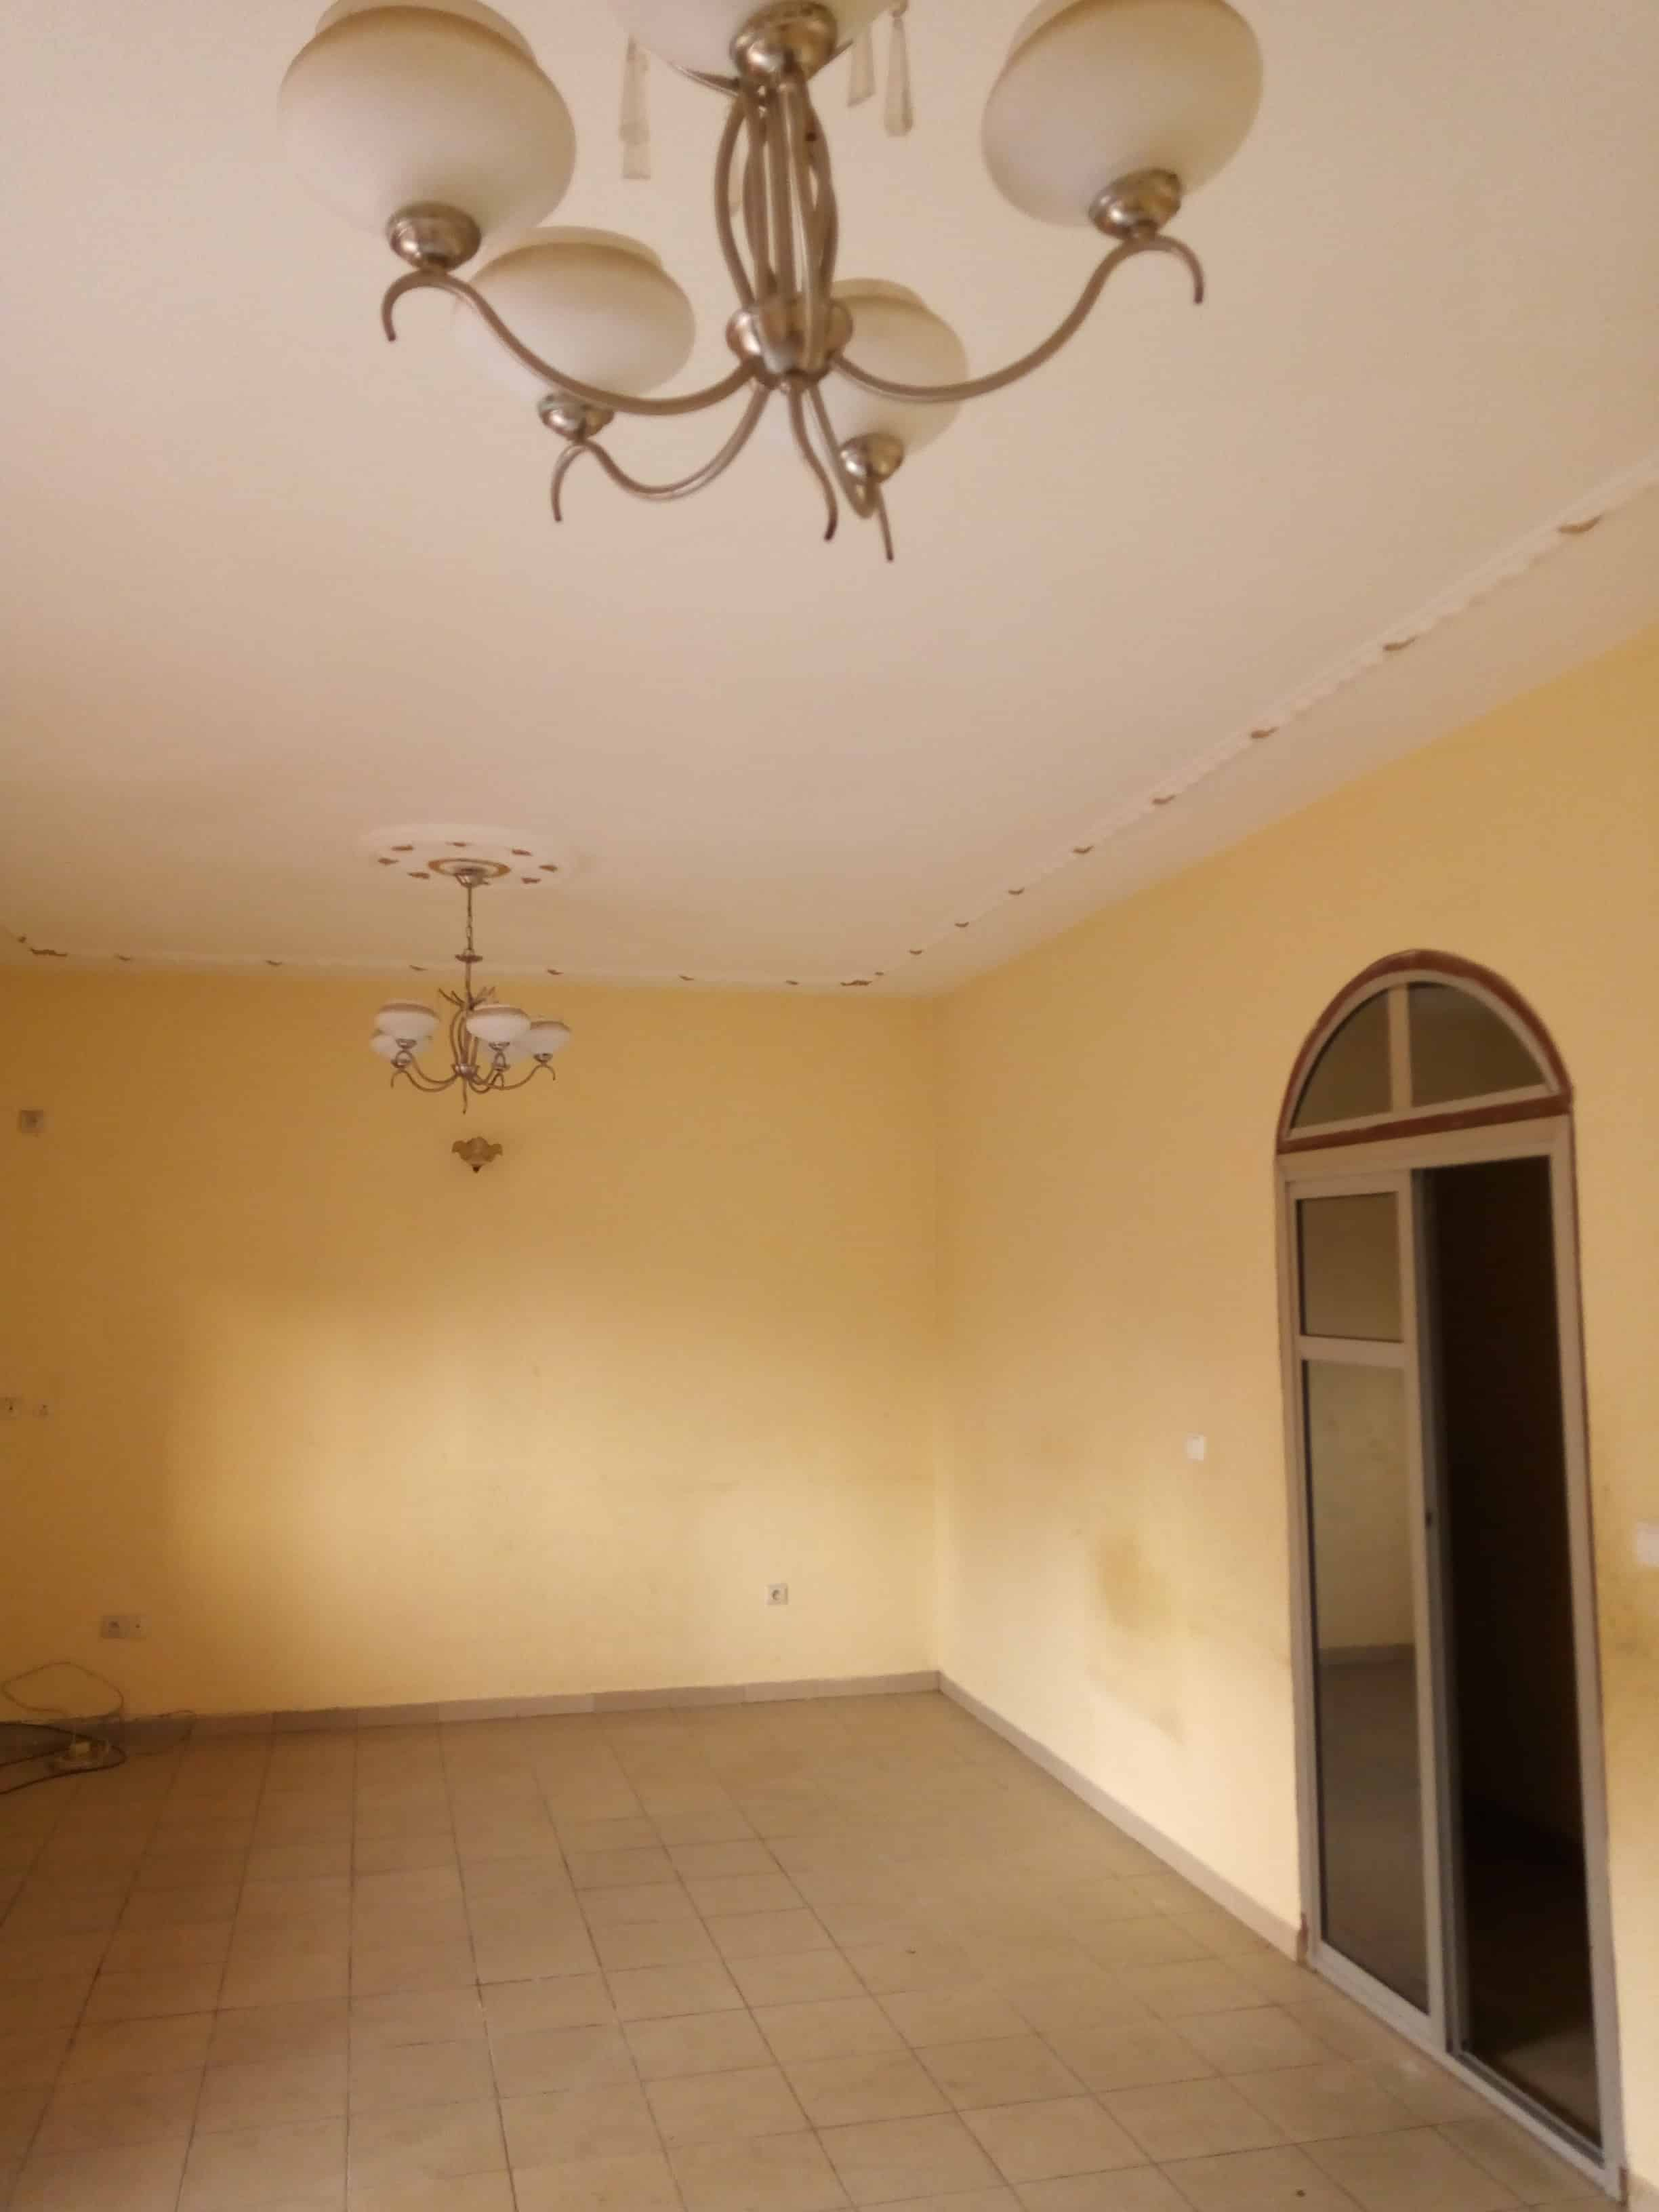 Apartment to rent - Douala, Makepe, Happy sport - 1 living room(s), 3 bedroom(s), 2 bathroom(s) - 180 000 FCFA / month